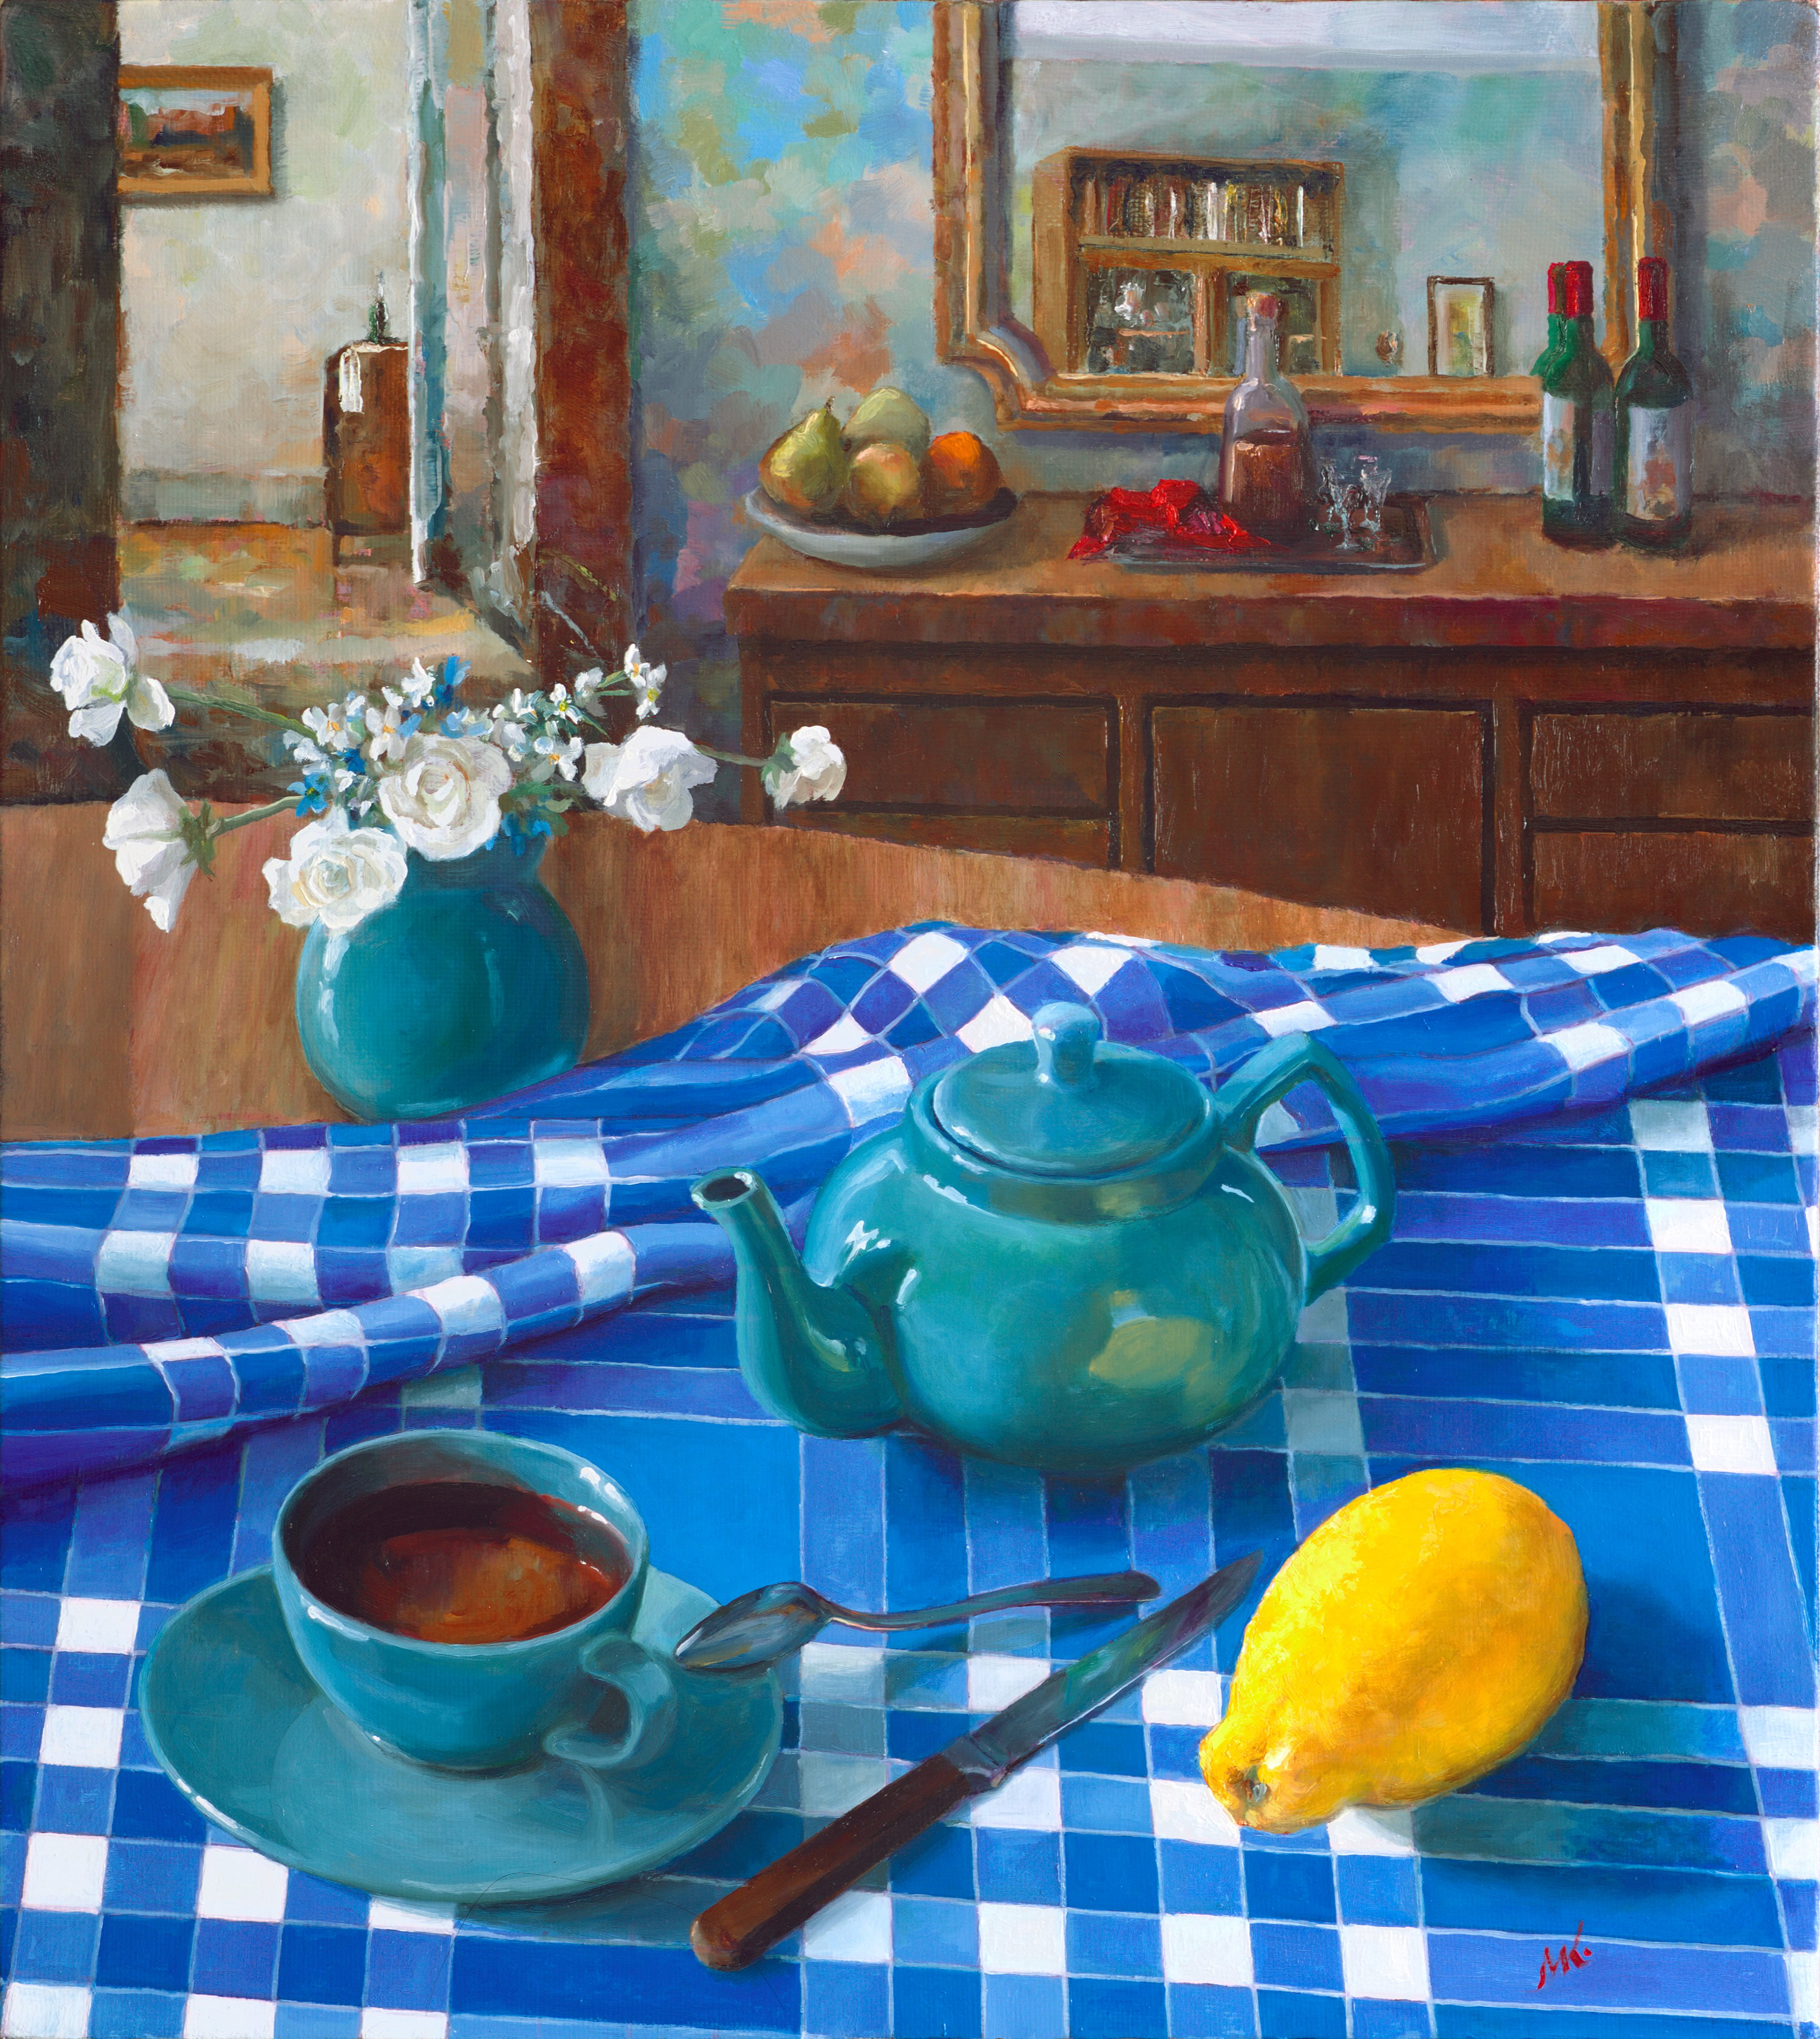 Mikhail Velavok; tea with lemon comp 2, 2018, Original Painting Oil, 50 x 56 cm. Artwork description: 241 Original oil painting on stretched canvas. The artwork is being sold unframed. The frame in the additional photo is an example only.tea, lemon, teapot, cup, still life, blue, checkered, fold, room, interior...